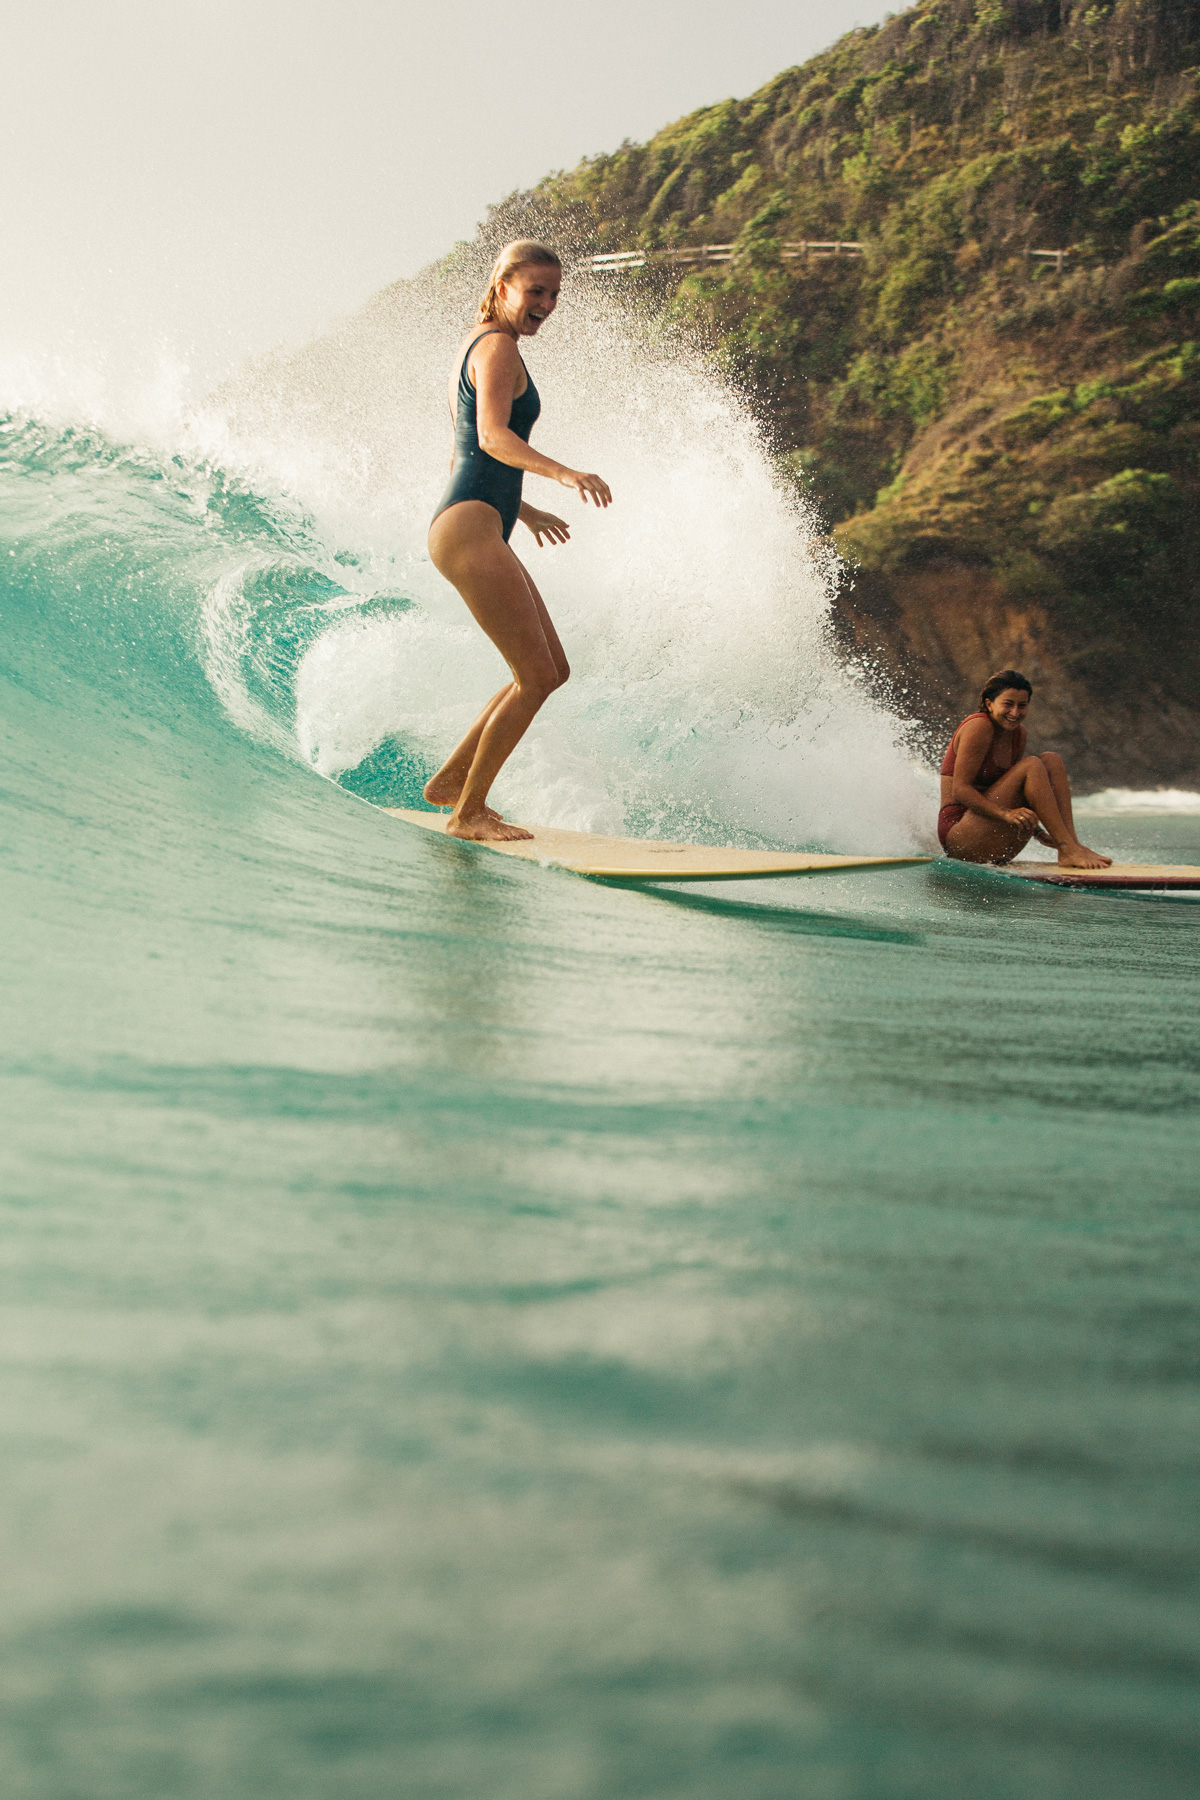 One girl surfing on a longboard wearing a one piece surf swimsuit.